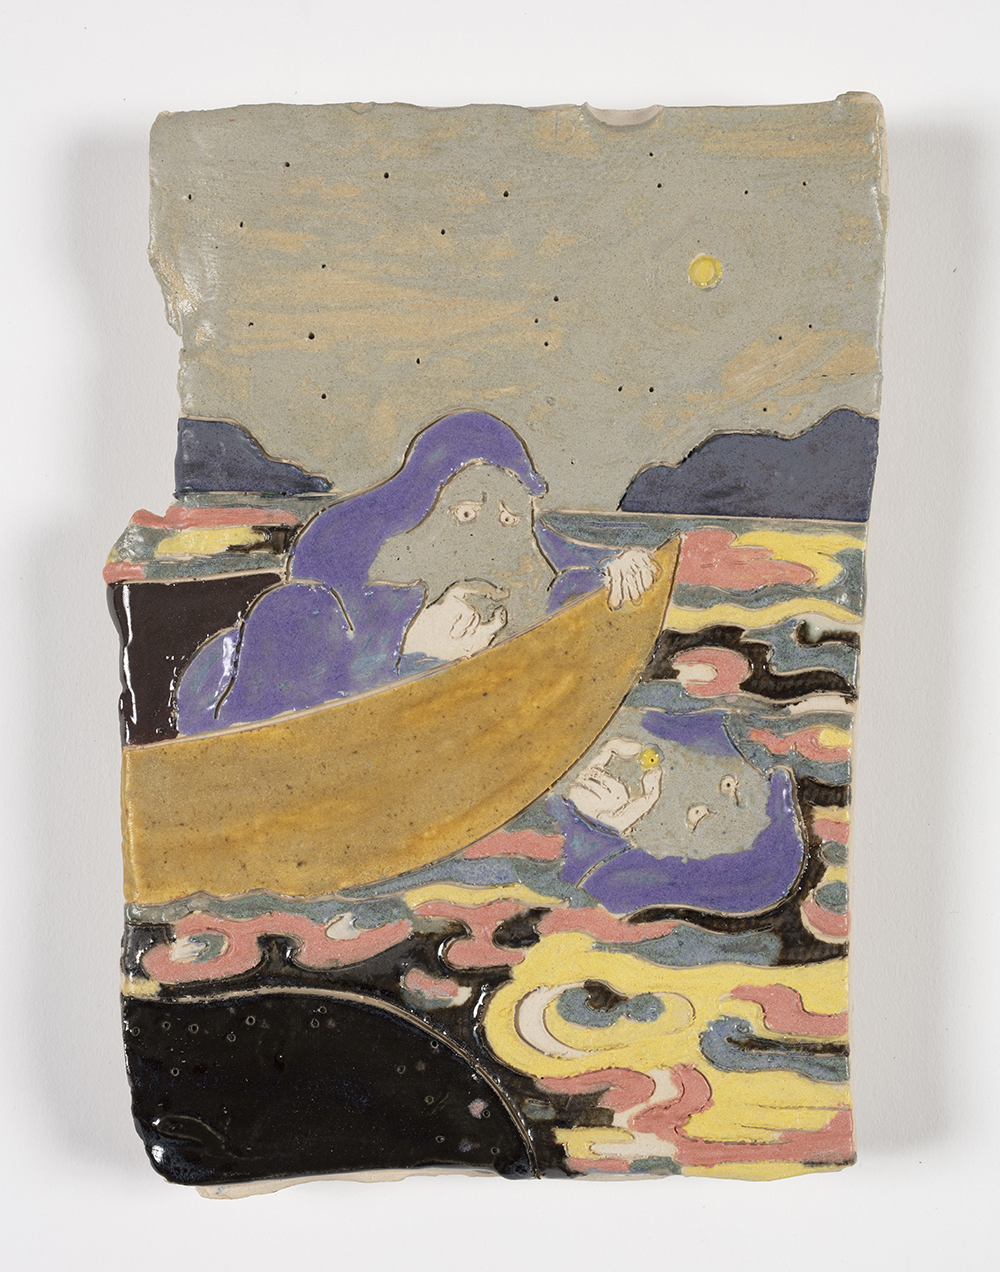 Kevin McNamee-Tweed.<em> Moon In Boat</em>, 2019. Glazed ceramic, 7 1/4 x 5 inches (18.4 x 12.7 cm)